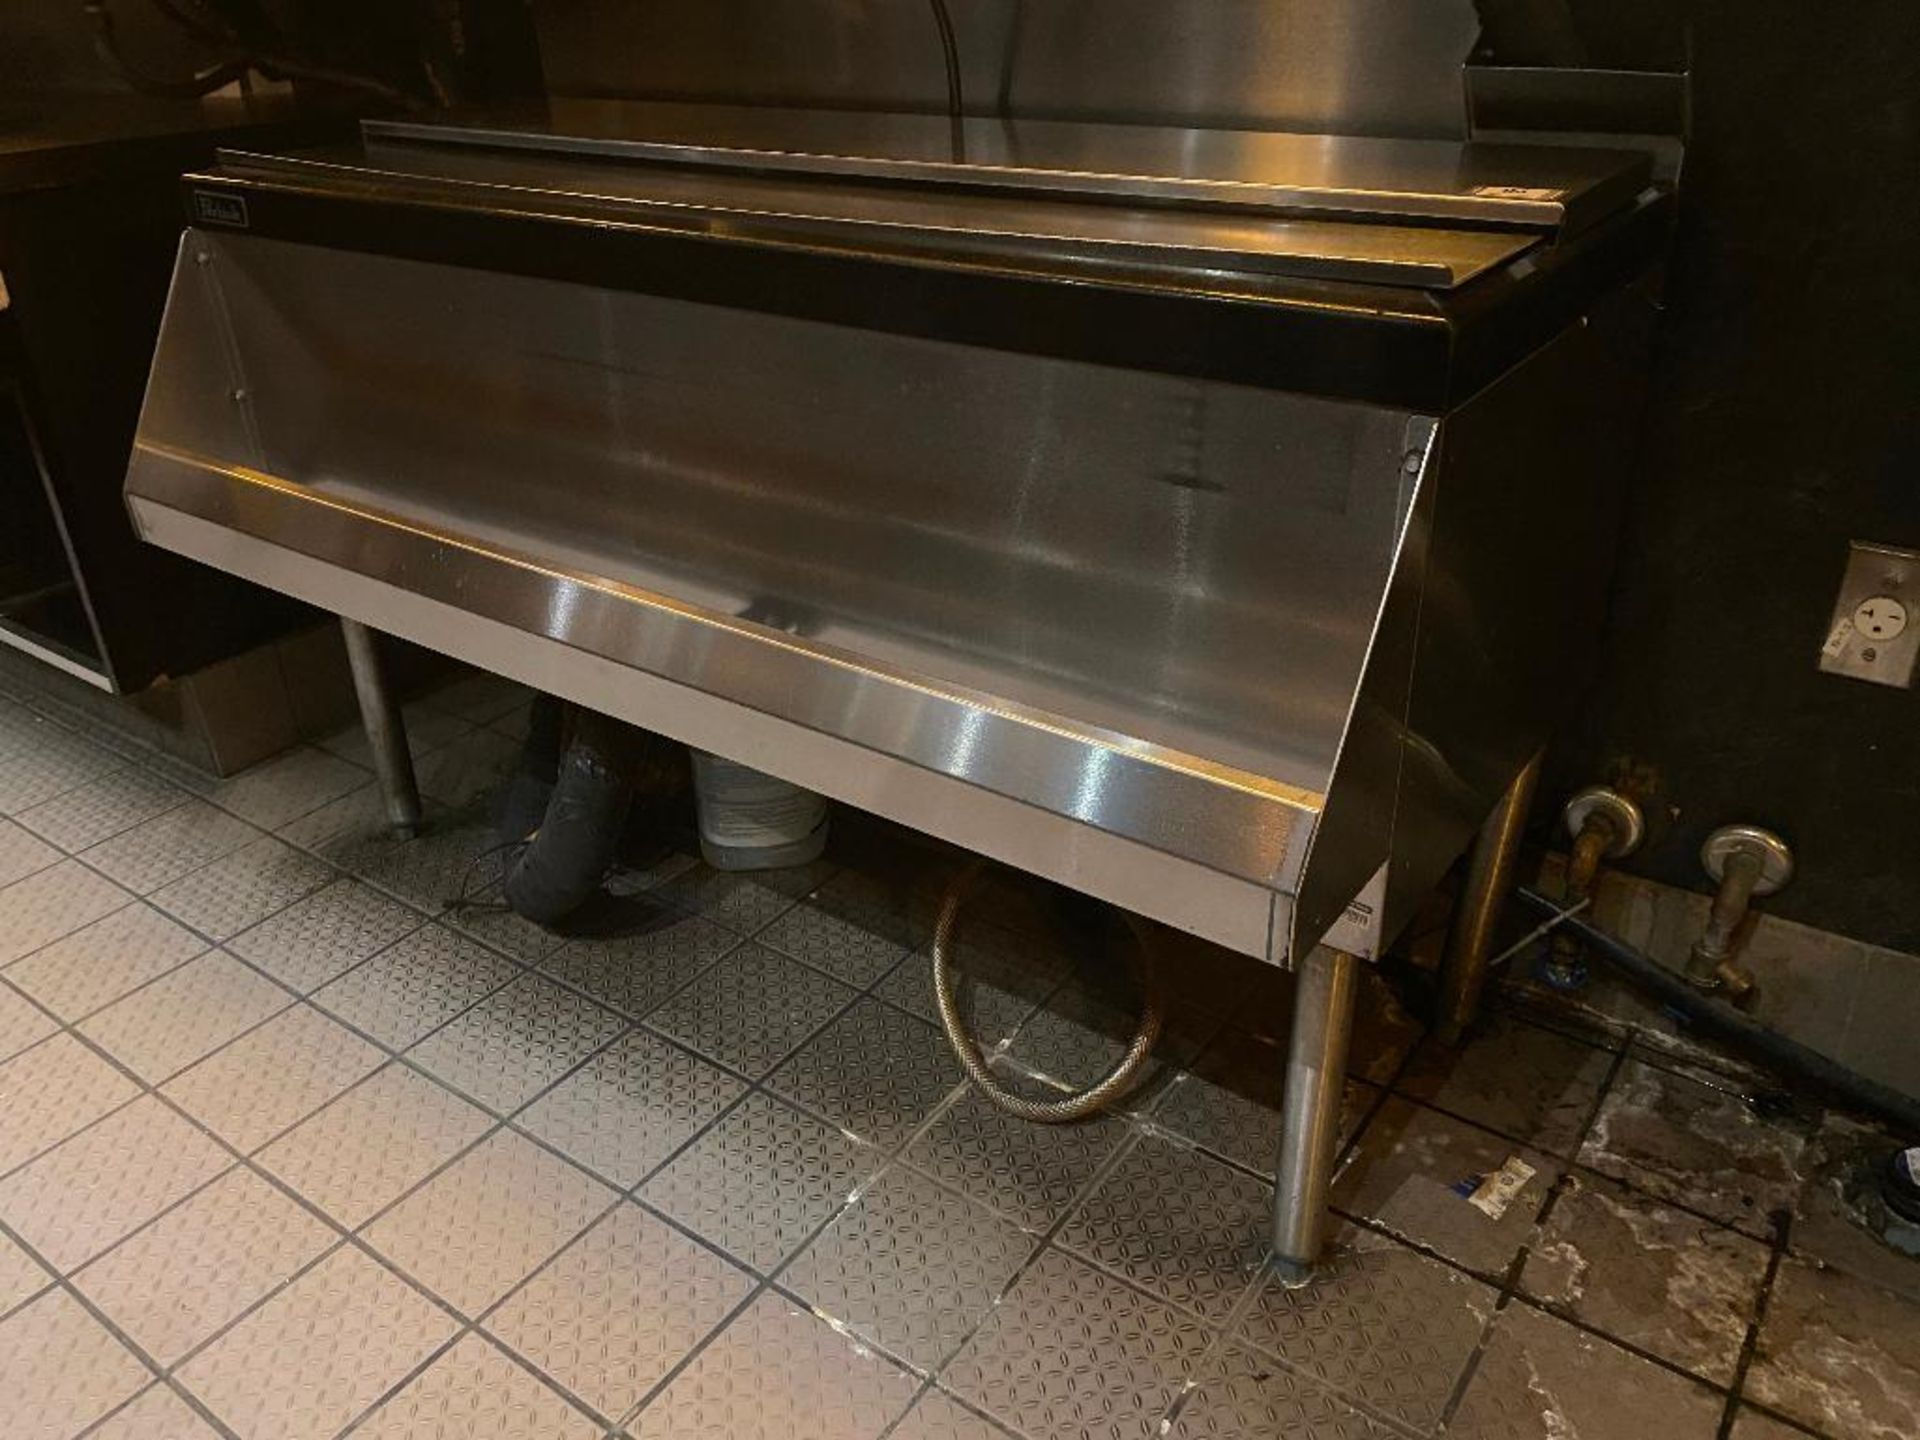 PERLICK STAINLESS STEEL ICE BIN WITH SINGLE SPEED RAIL - NOTE: REQUIRES DISCONNECT, PLEASE INSPECT